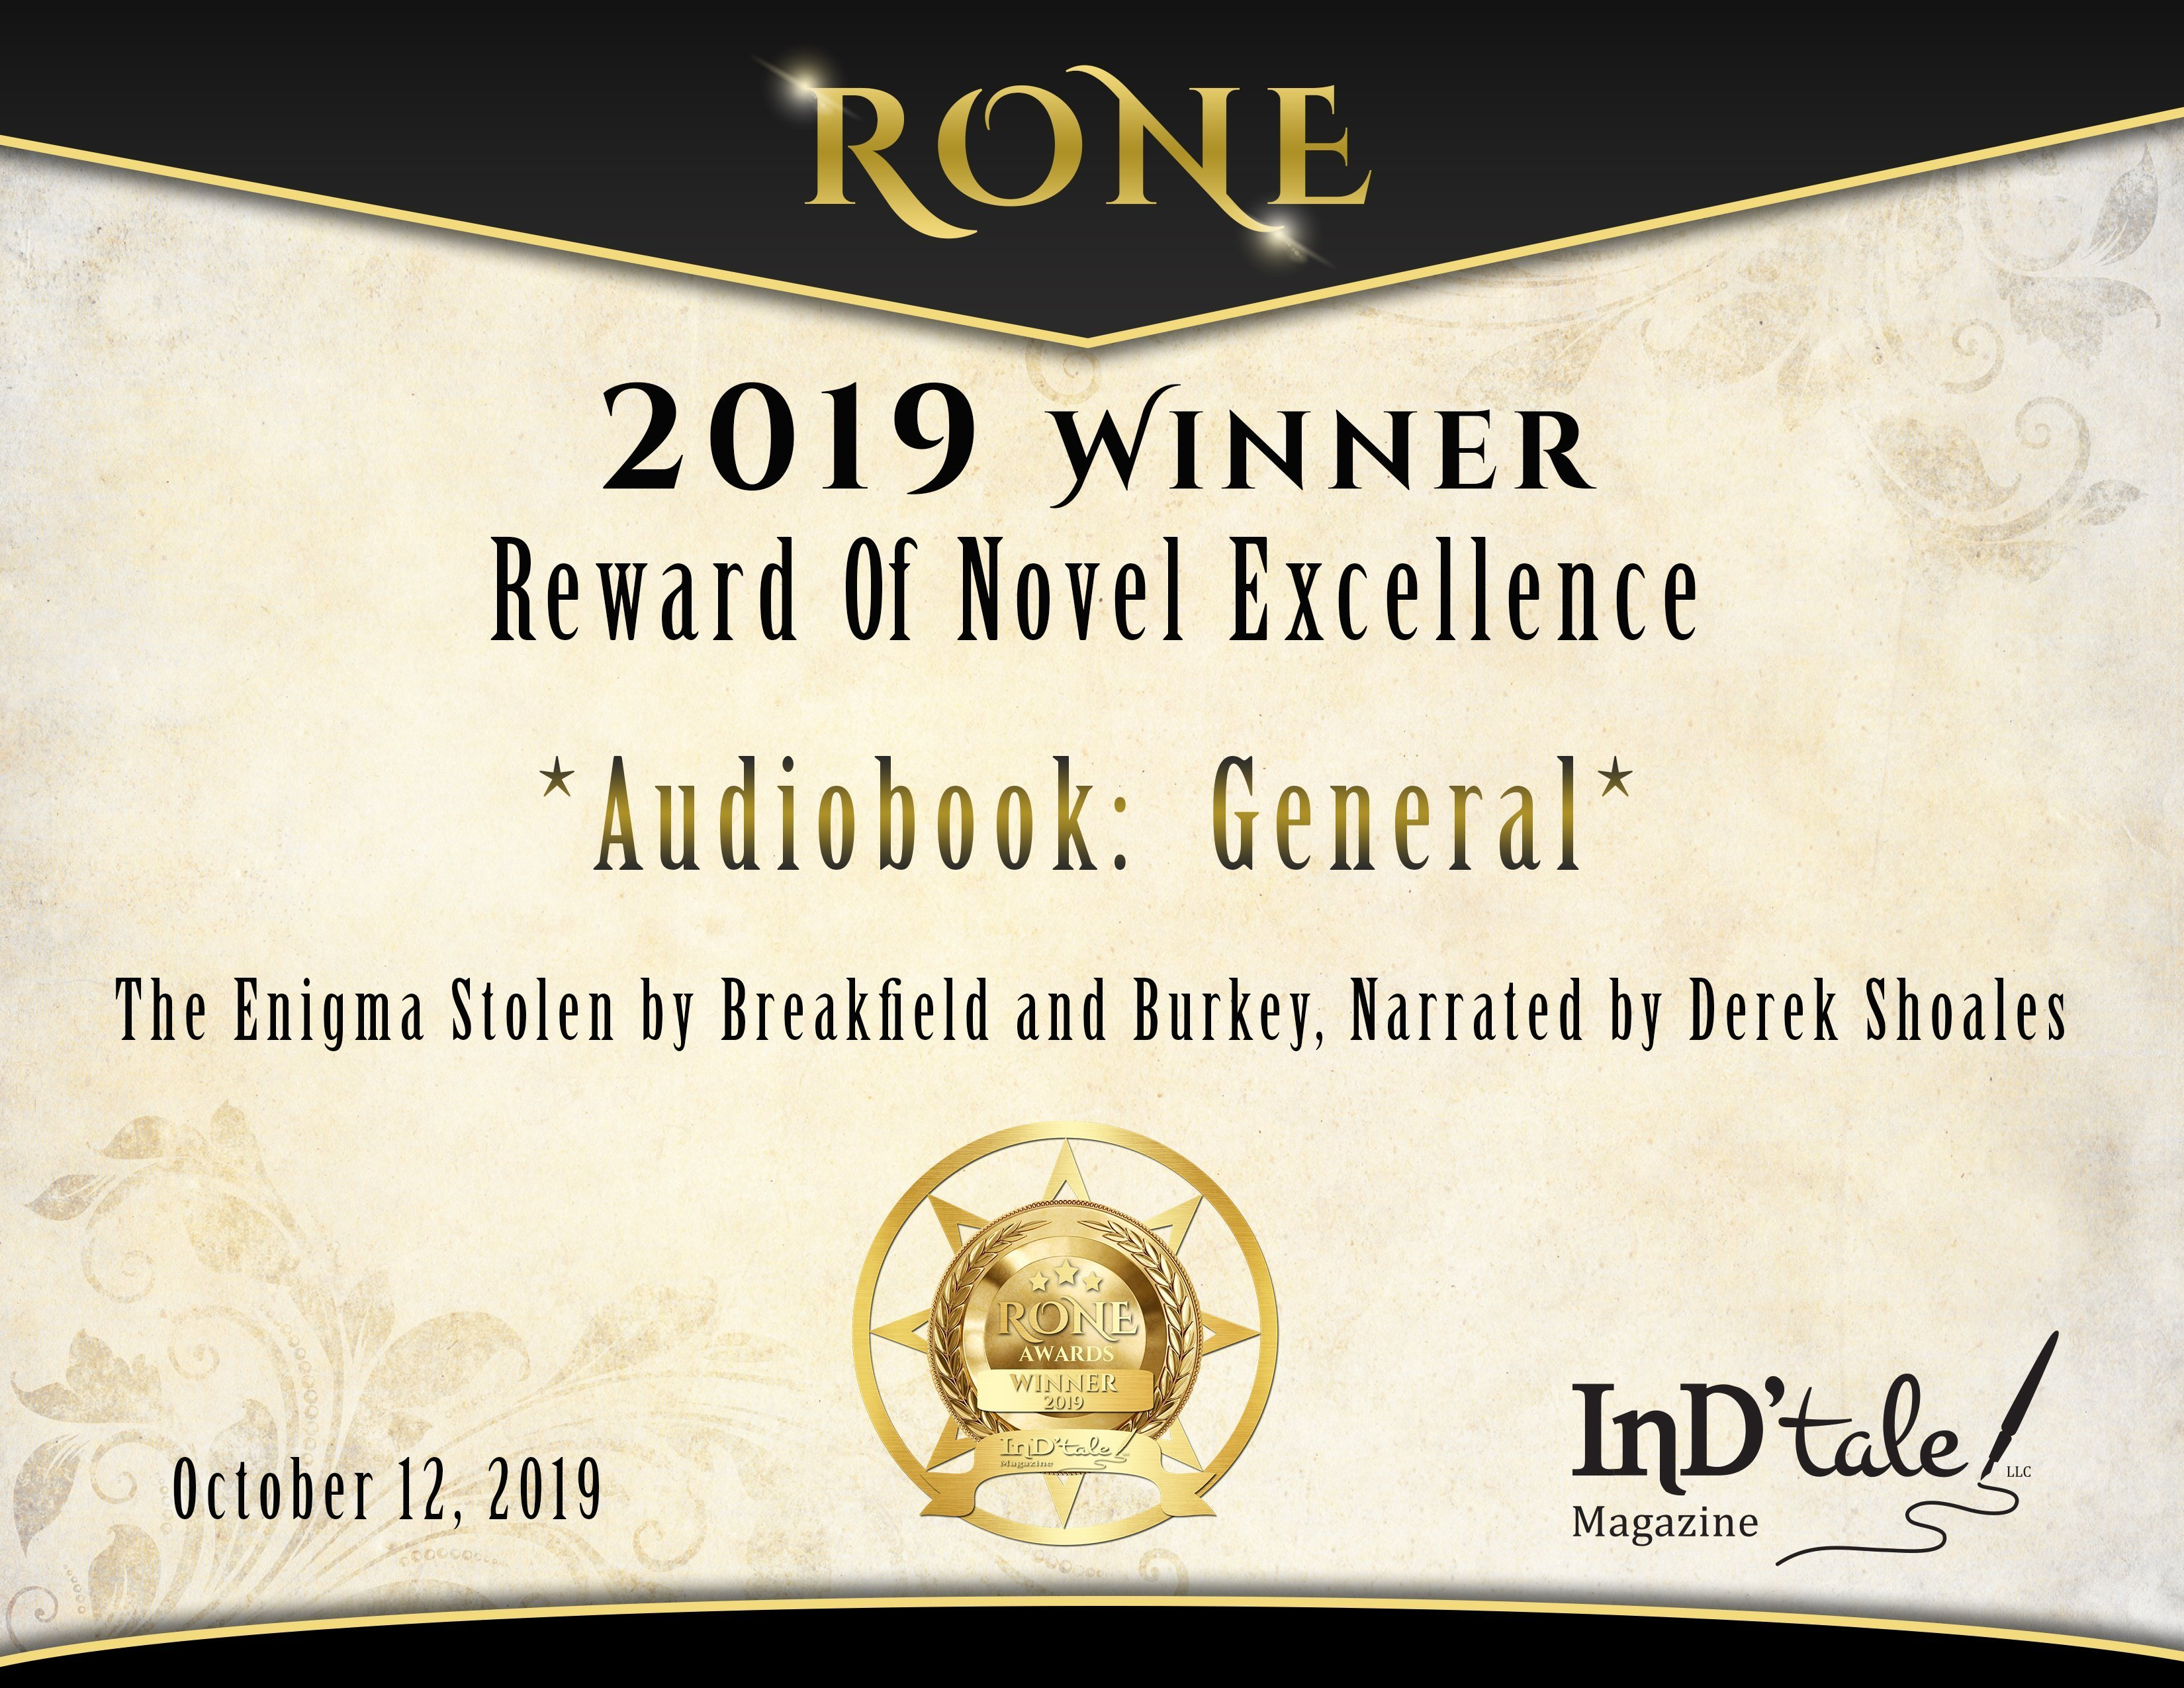 RONE 2019 Winner – Audiobooks: General